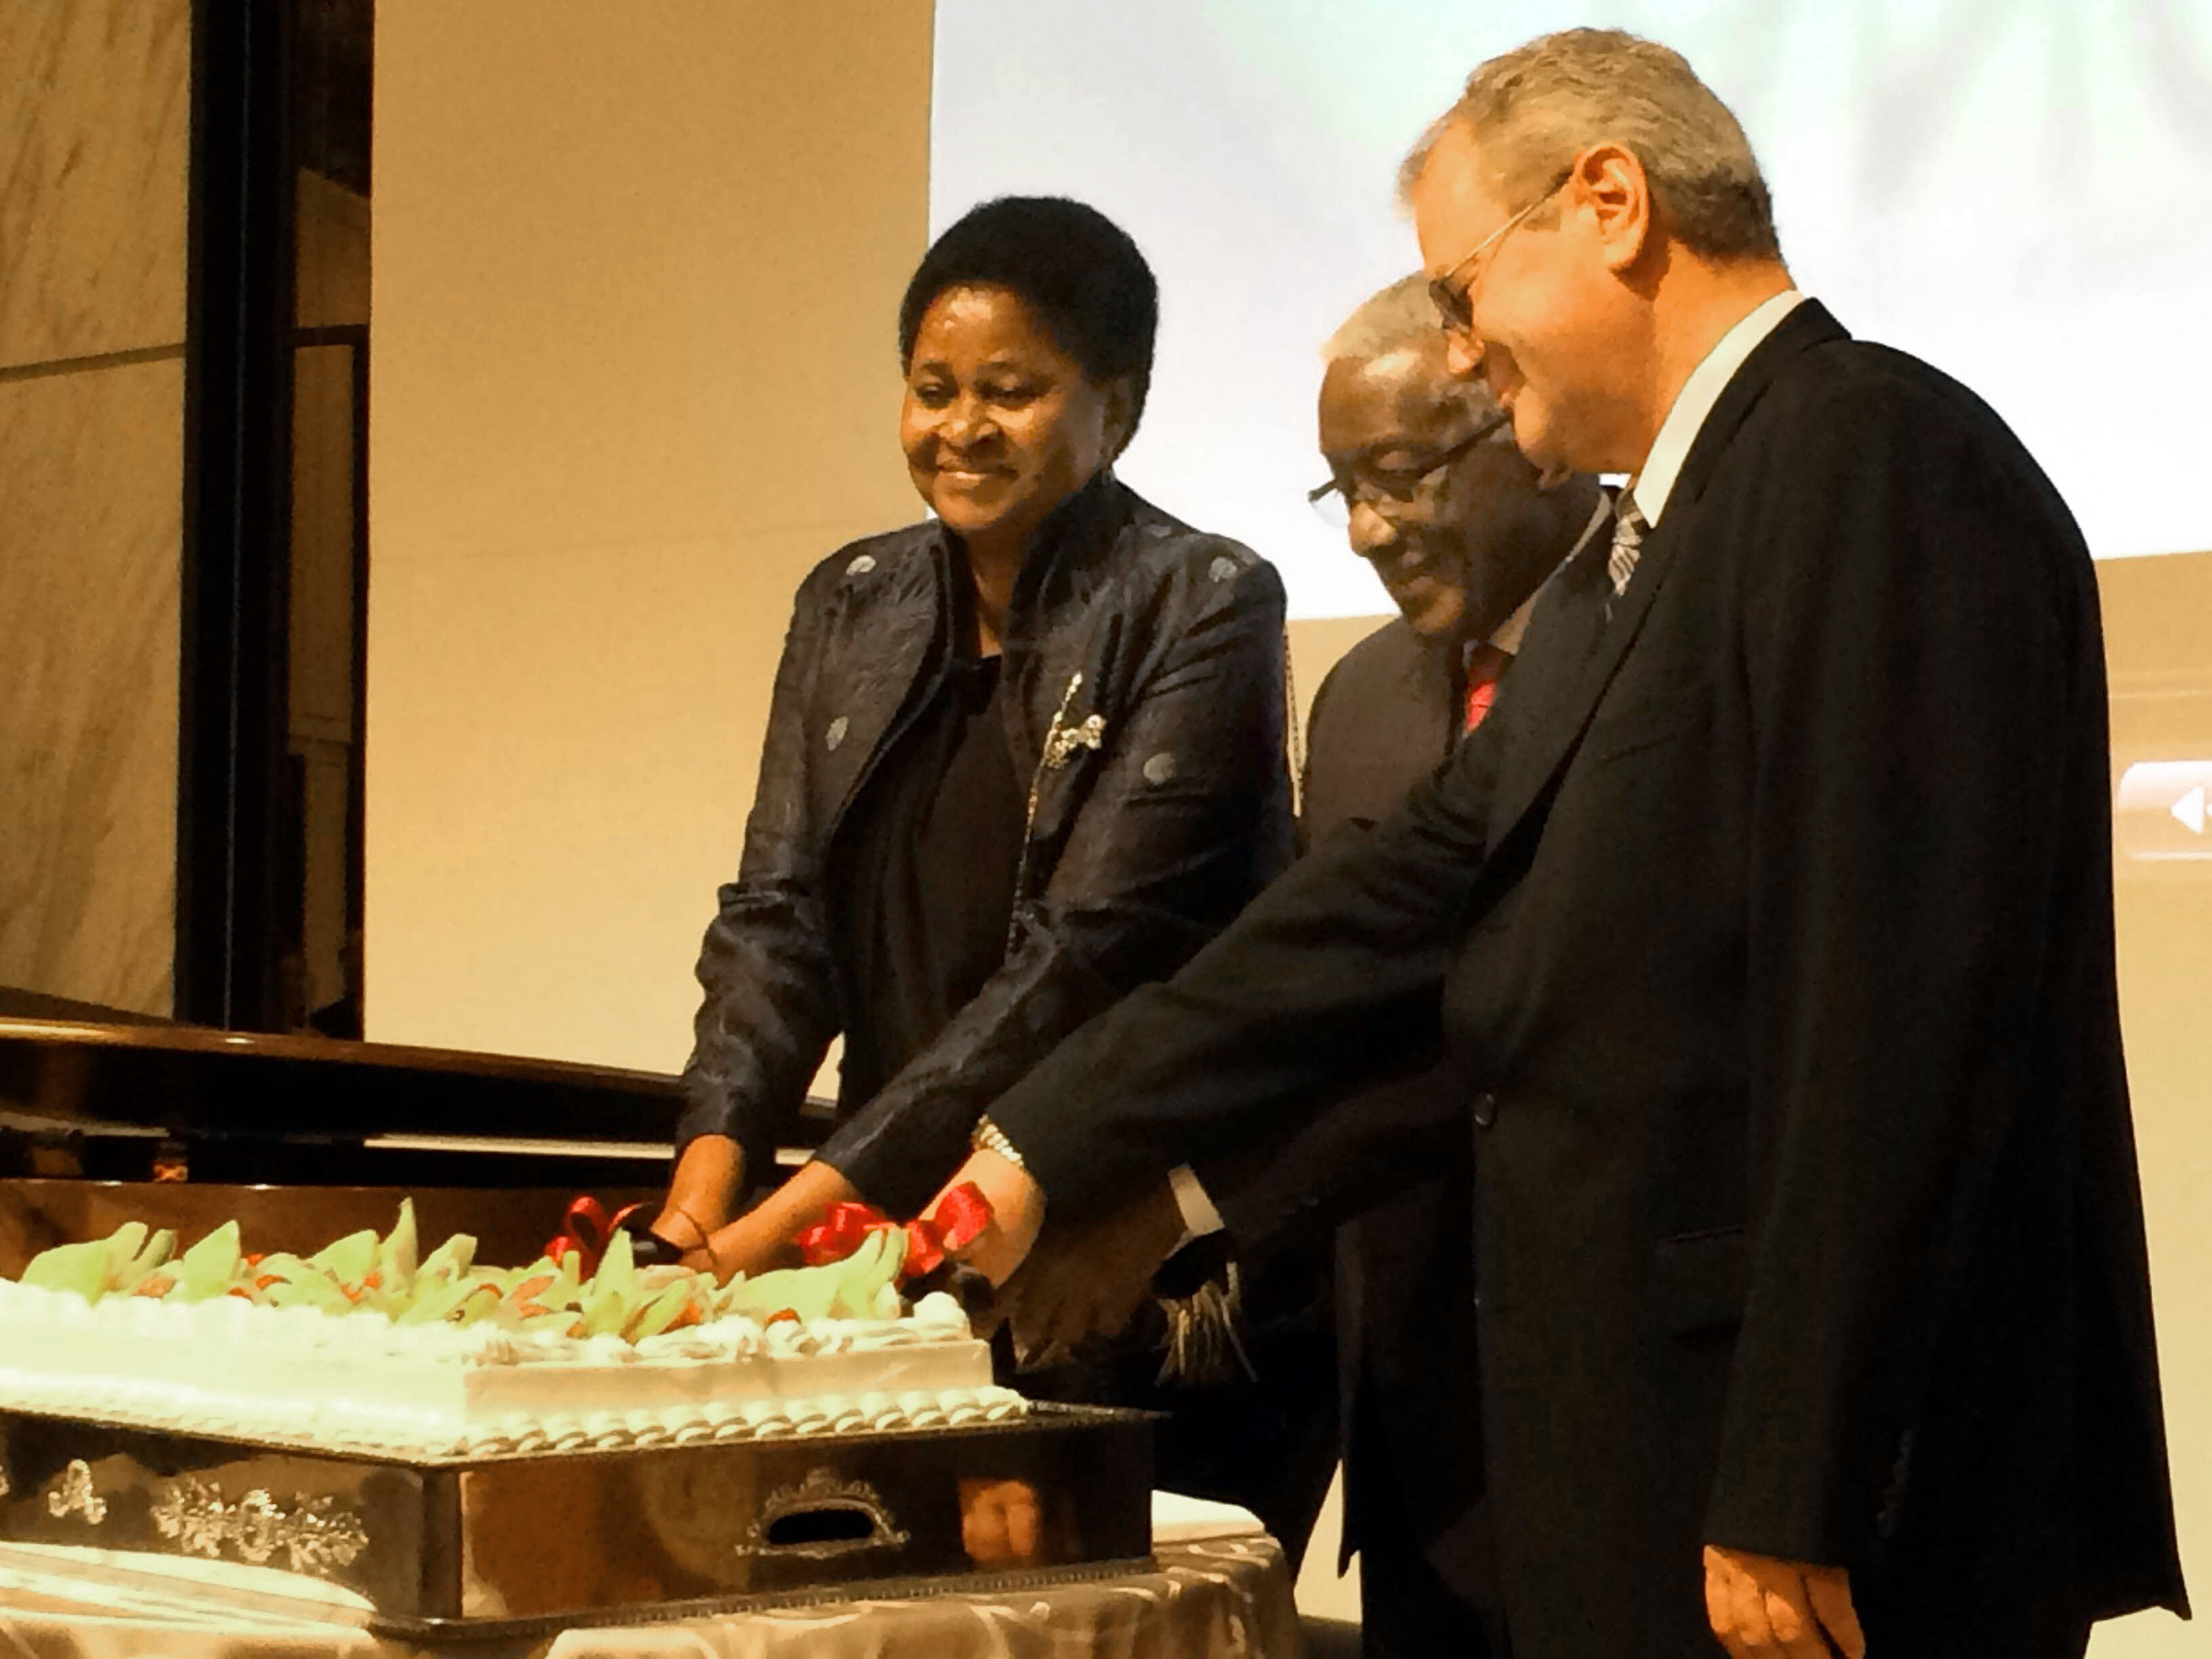 Angola Ambassador Joao Miguel Vahekeni (center) is joined in a cake-cutting ceremony by Namibia Ambassador Sophia Namupa Nangombe (left) and Albert X. Kirchman, president & CEO Head of Daimler Trucks Asia, during a reception to celebrate Angola's 40th Anniversary of Independence at the Tokyo Marriott Hotel on Nov. 11. | KAORU KUWABARA